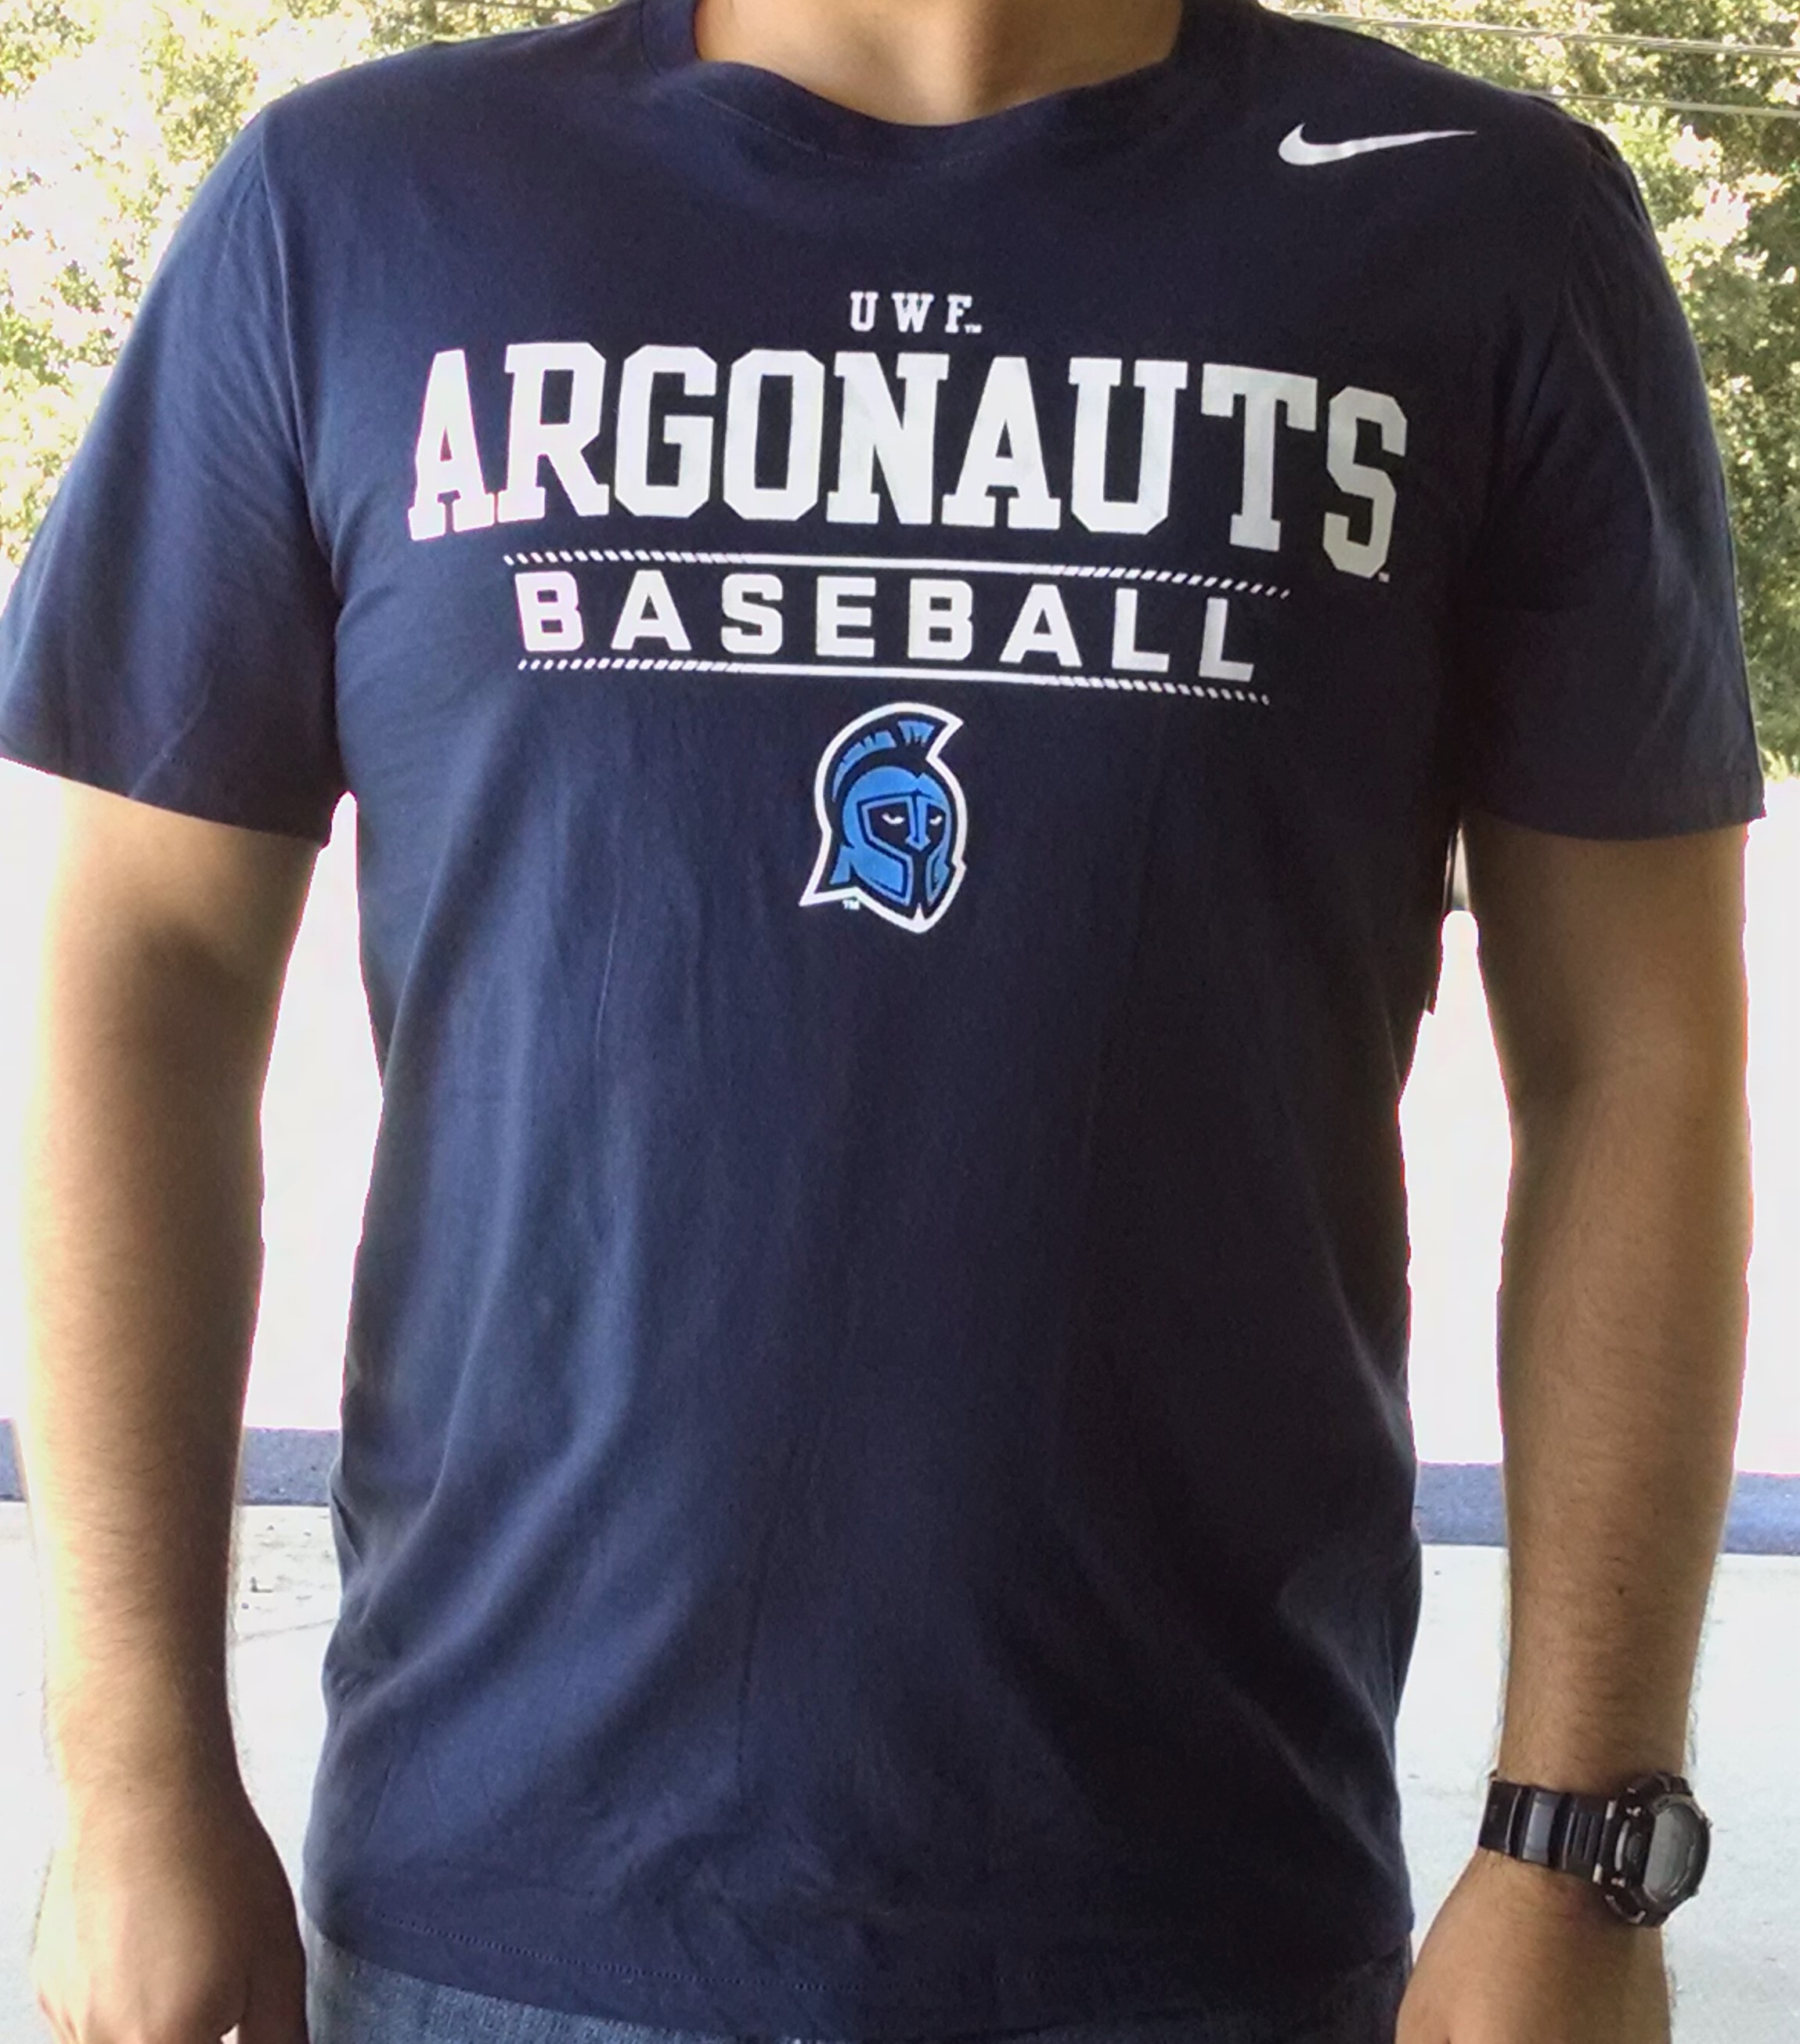 ARGOS BASEBALL SHIRT